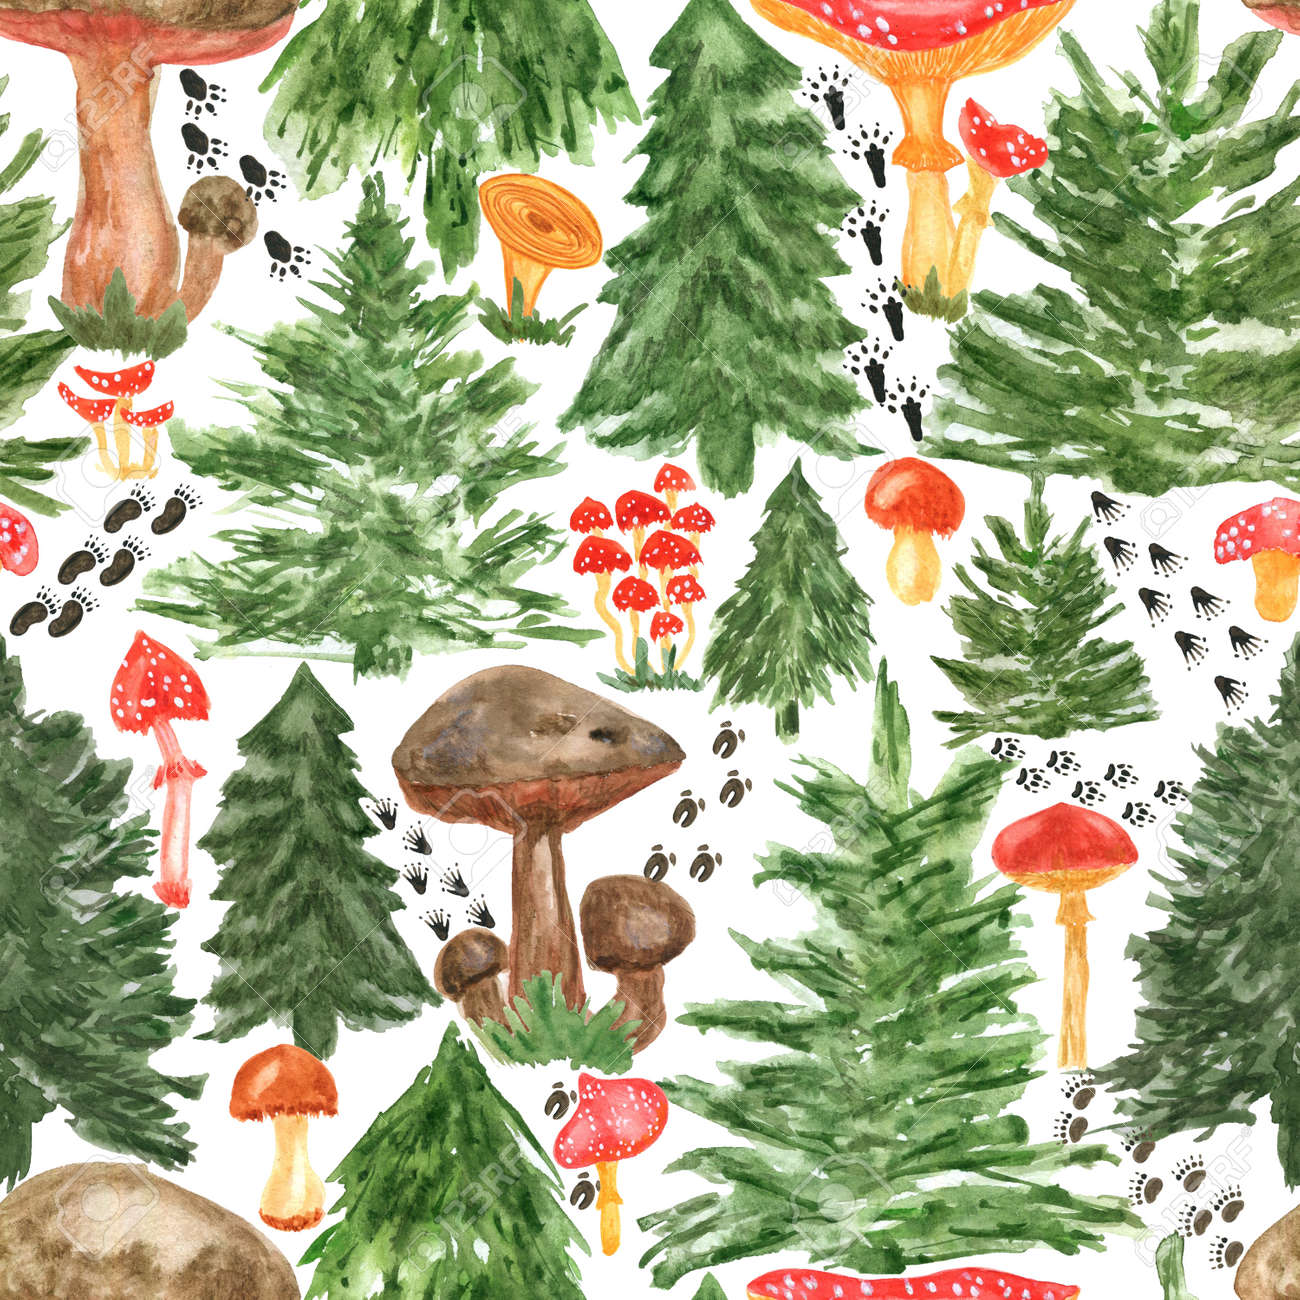 Colorful watercolor trees, animal footprints and mushrooms seamless pattern. Hand Illustration for creating fabrics, wallpapers, gift wrapping paper, invitations, textile, scrapbooking. - 165544106